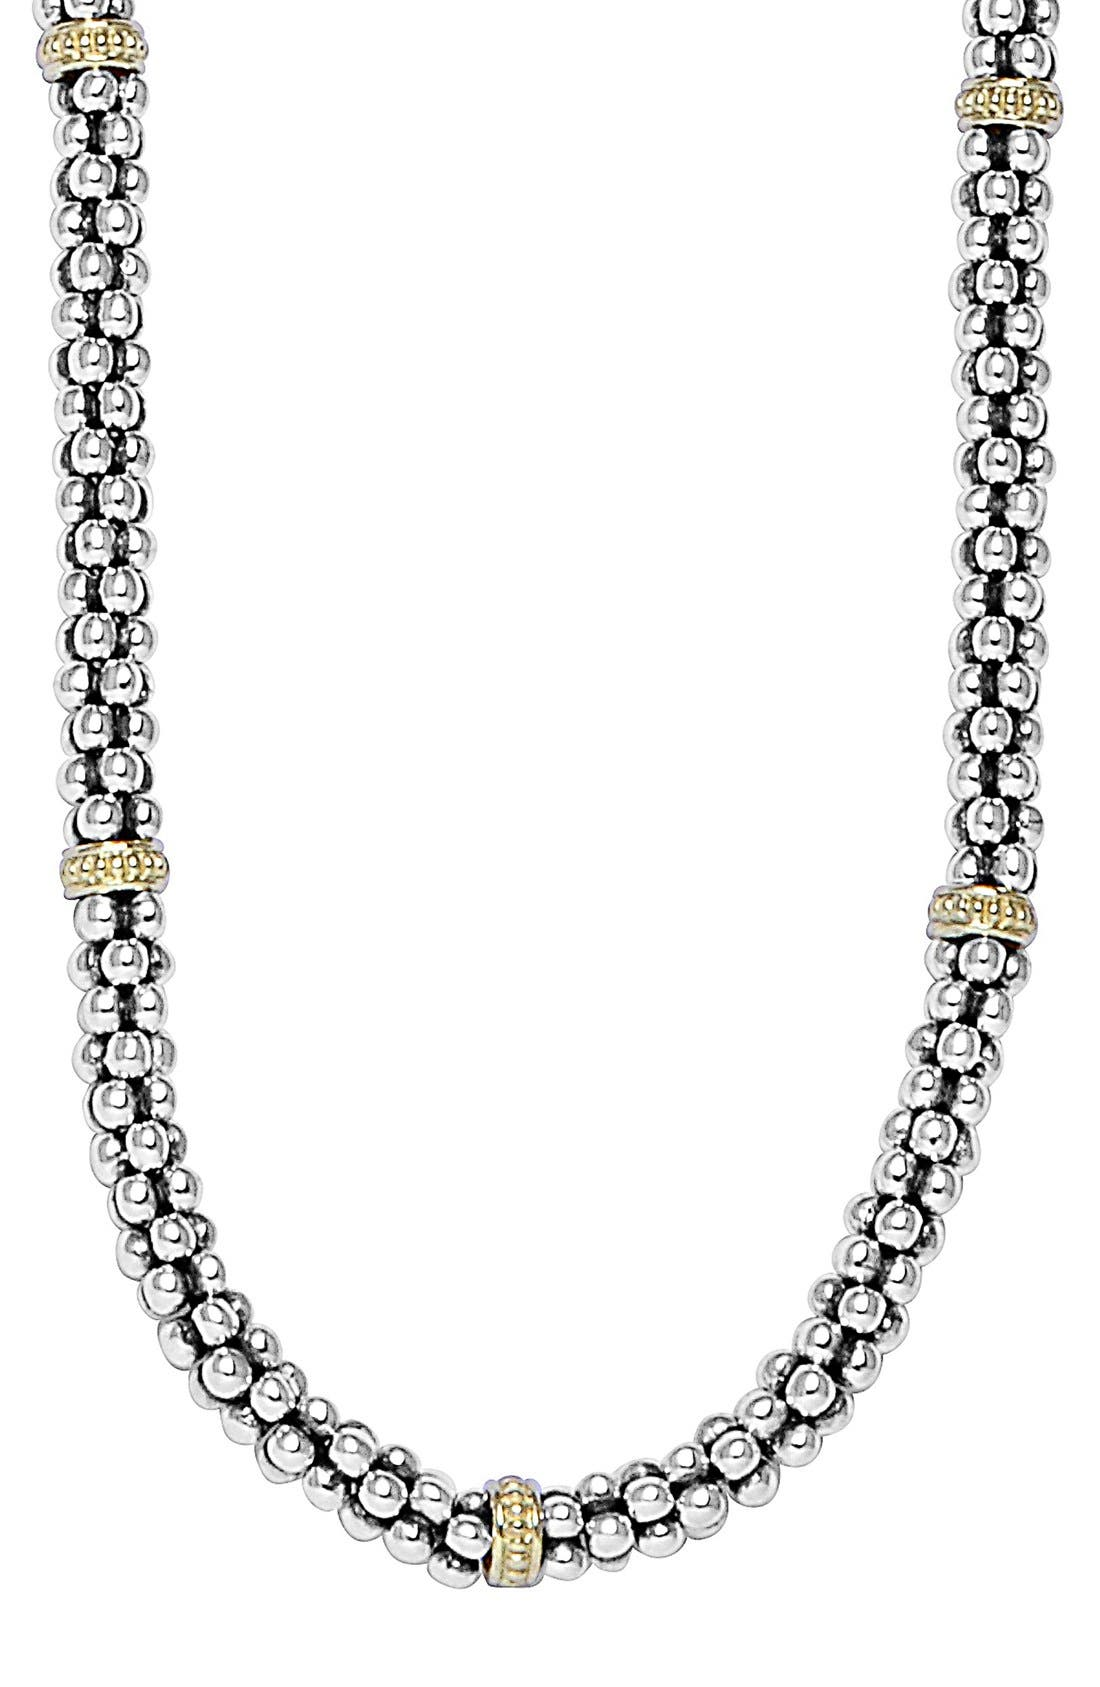 Alternate Image 1 Selected - LAGOS Mini Caviar™ Rope Necklace